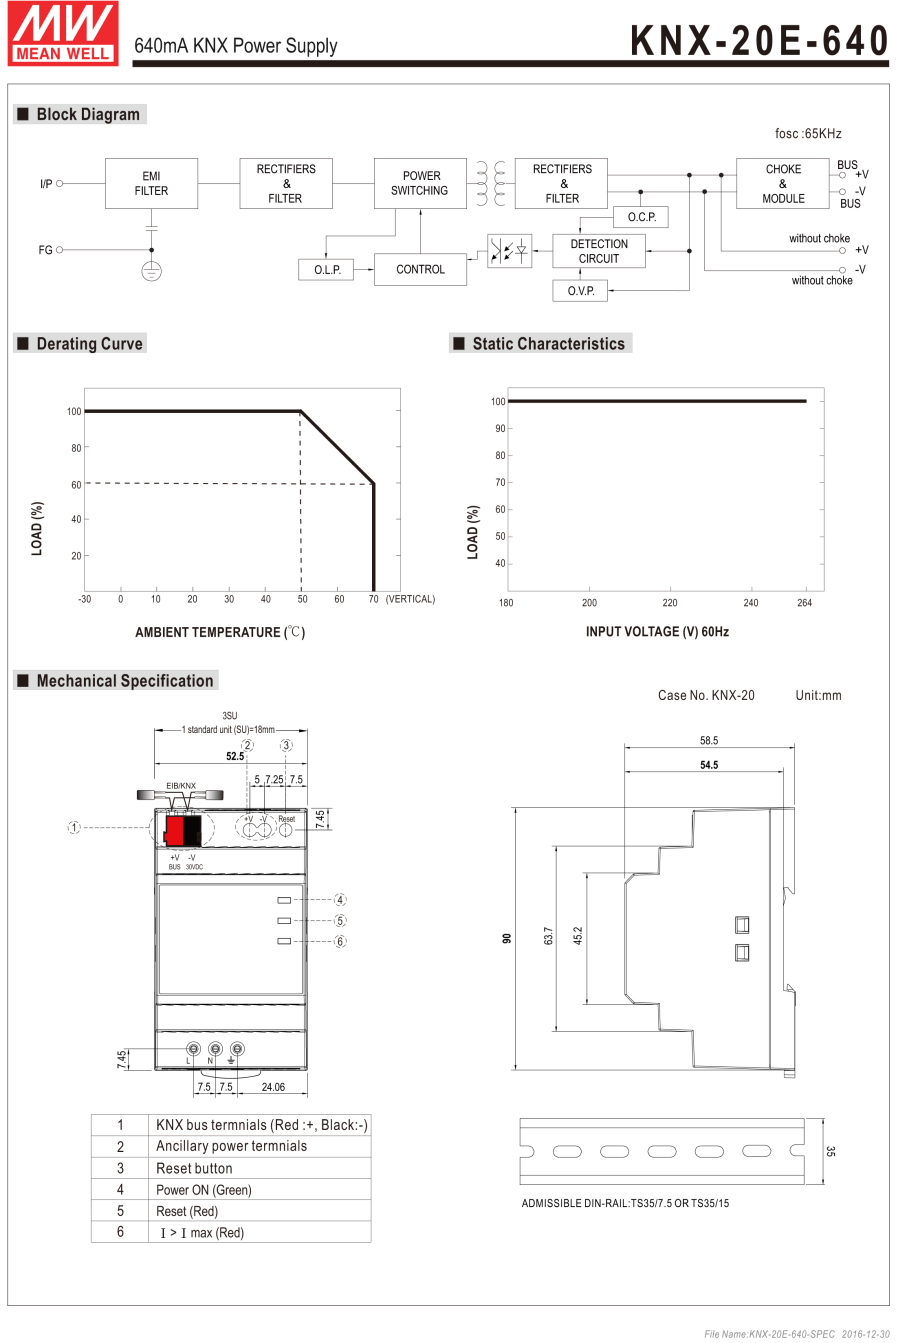 MEANWELL_POWER_SUPPLY_HOT_SELLING_KNX_20E_640_4